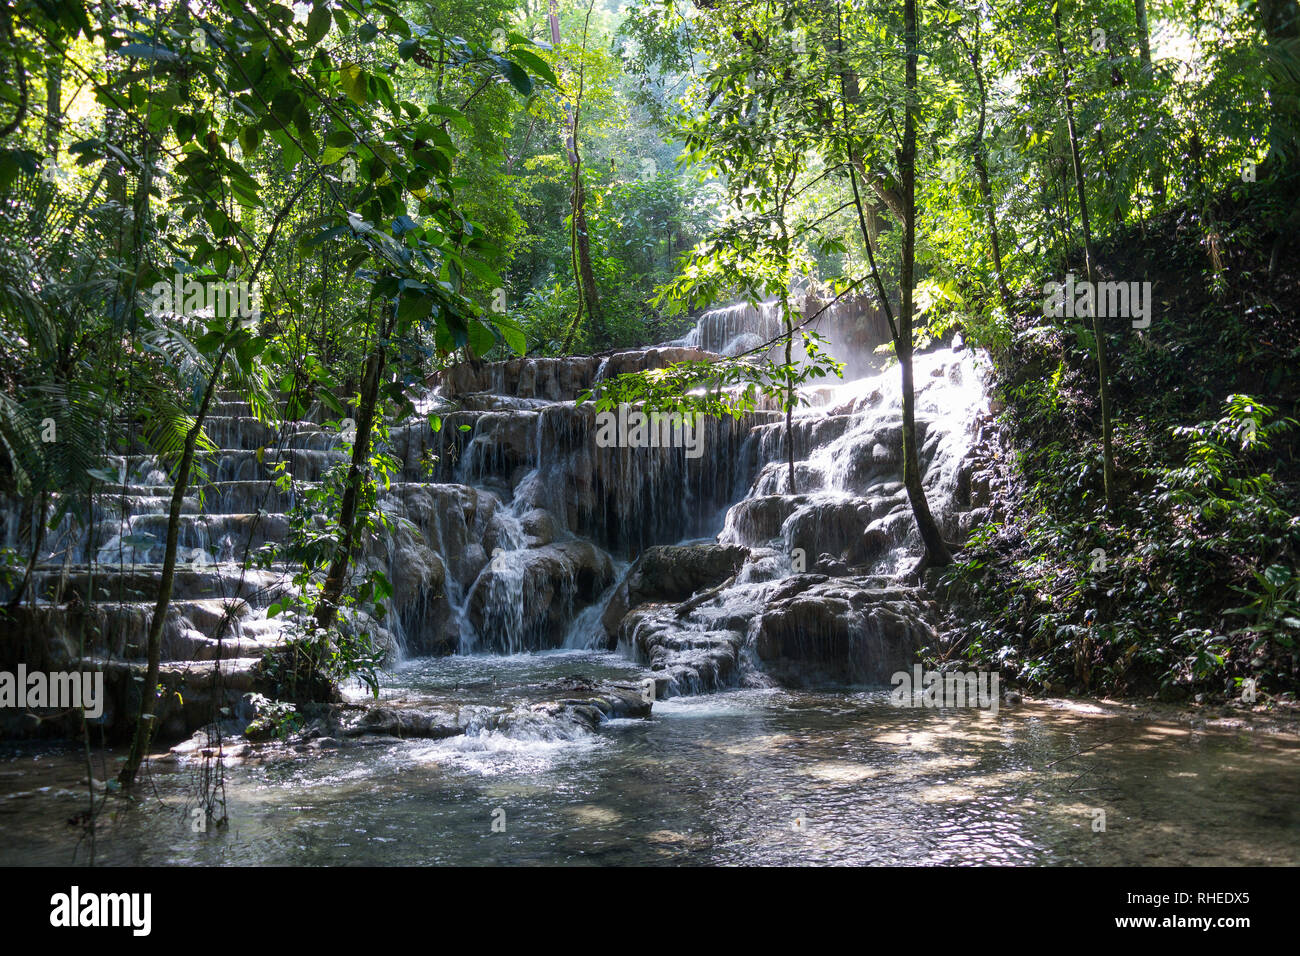 Waterfall on way to Palenque ruins, Chiapas, Mexico - Stock Image